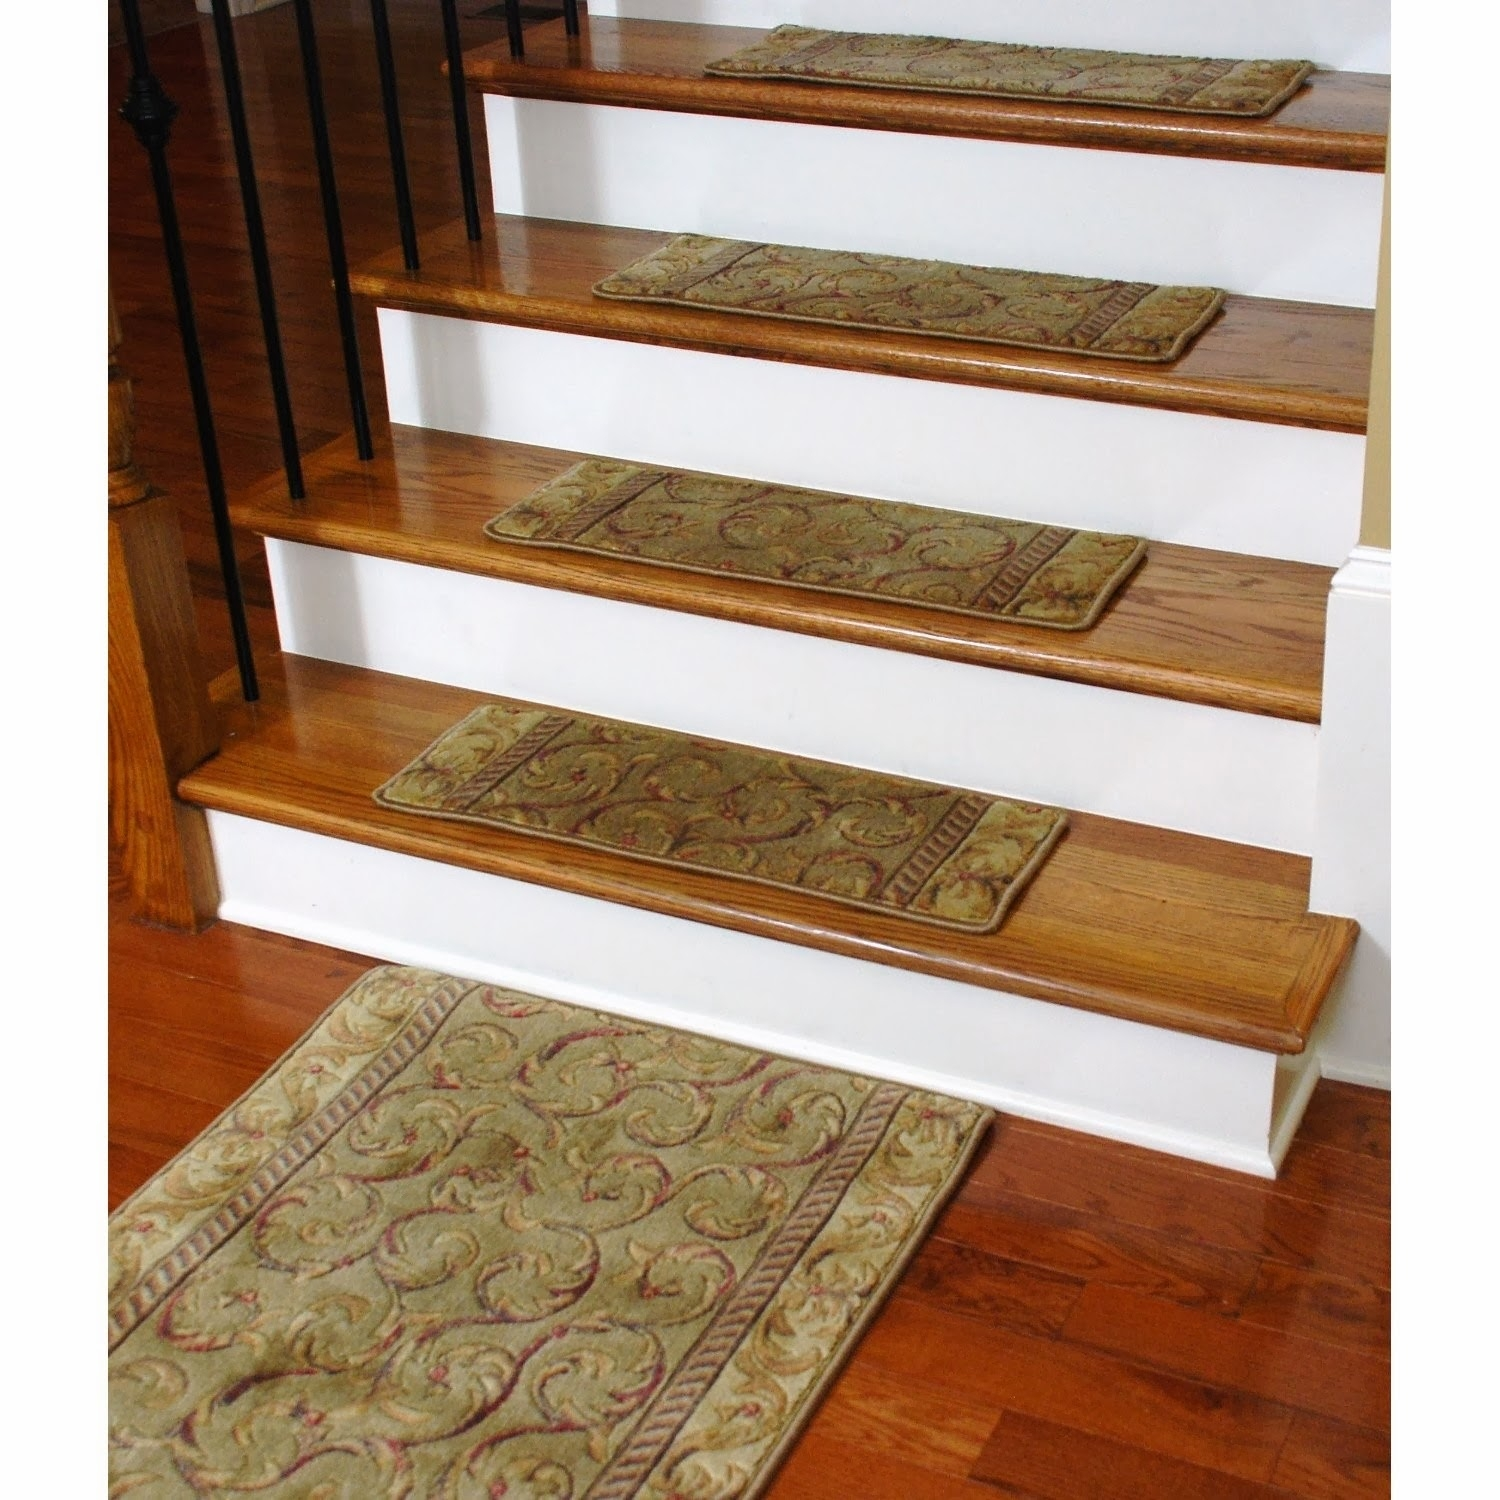 54 Stair Carpet Protectors Protective Non Skid Carpet Runner For Intended For Stair Tread Carpet Covers (View 7 of 15)